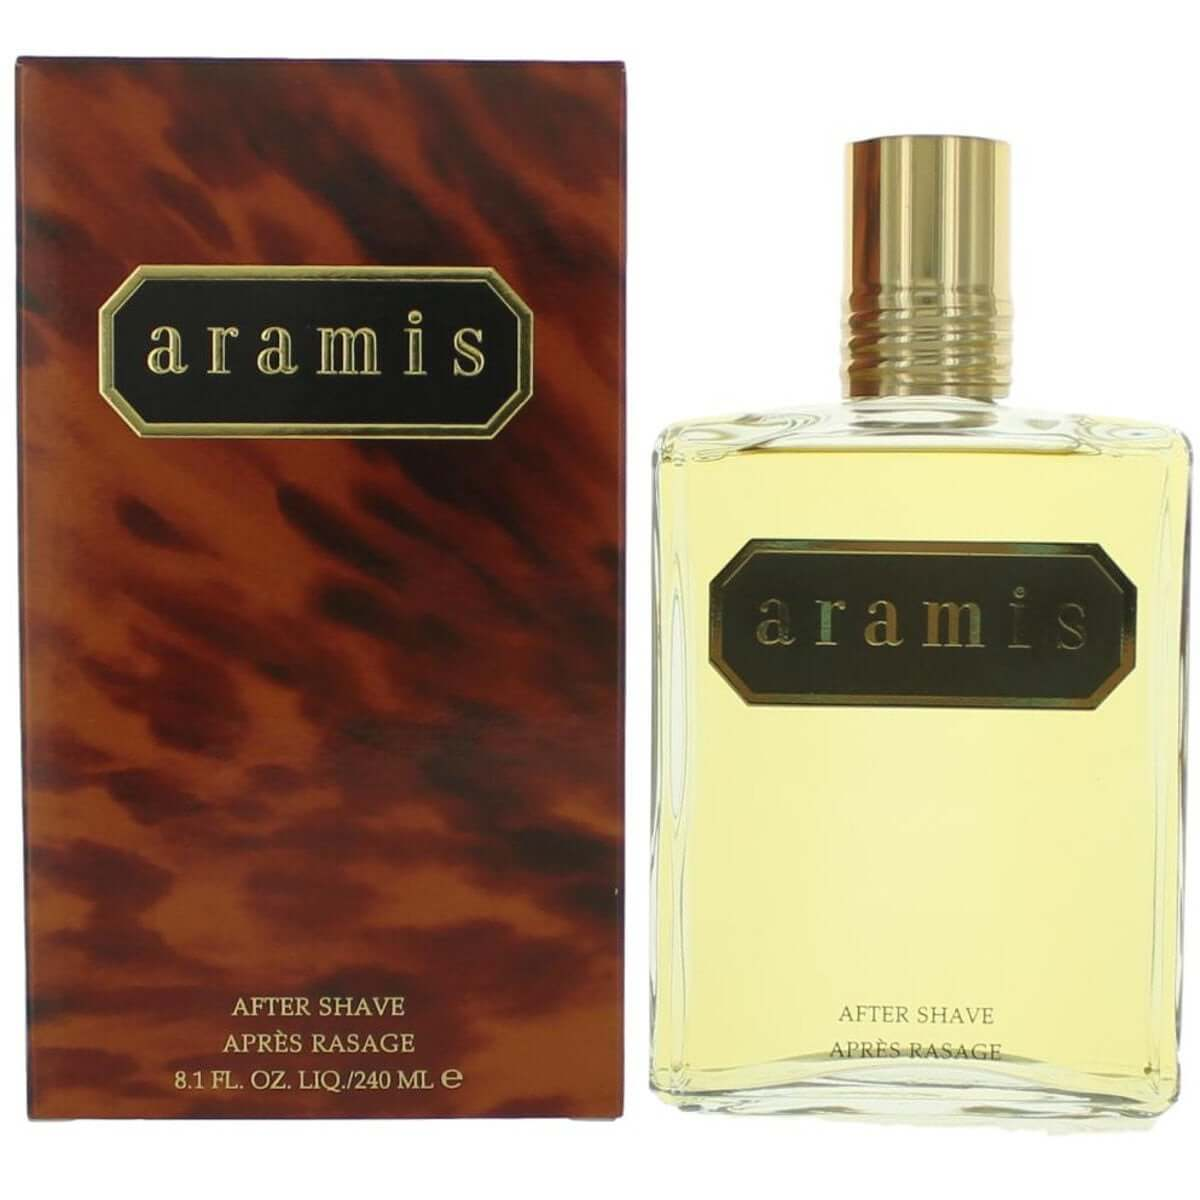 ARAMIS by Aramis after shave for Men 8.0 / 8.1 oz New in Box